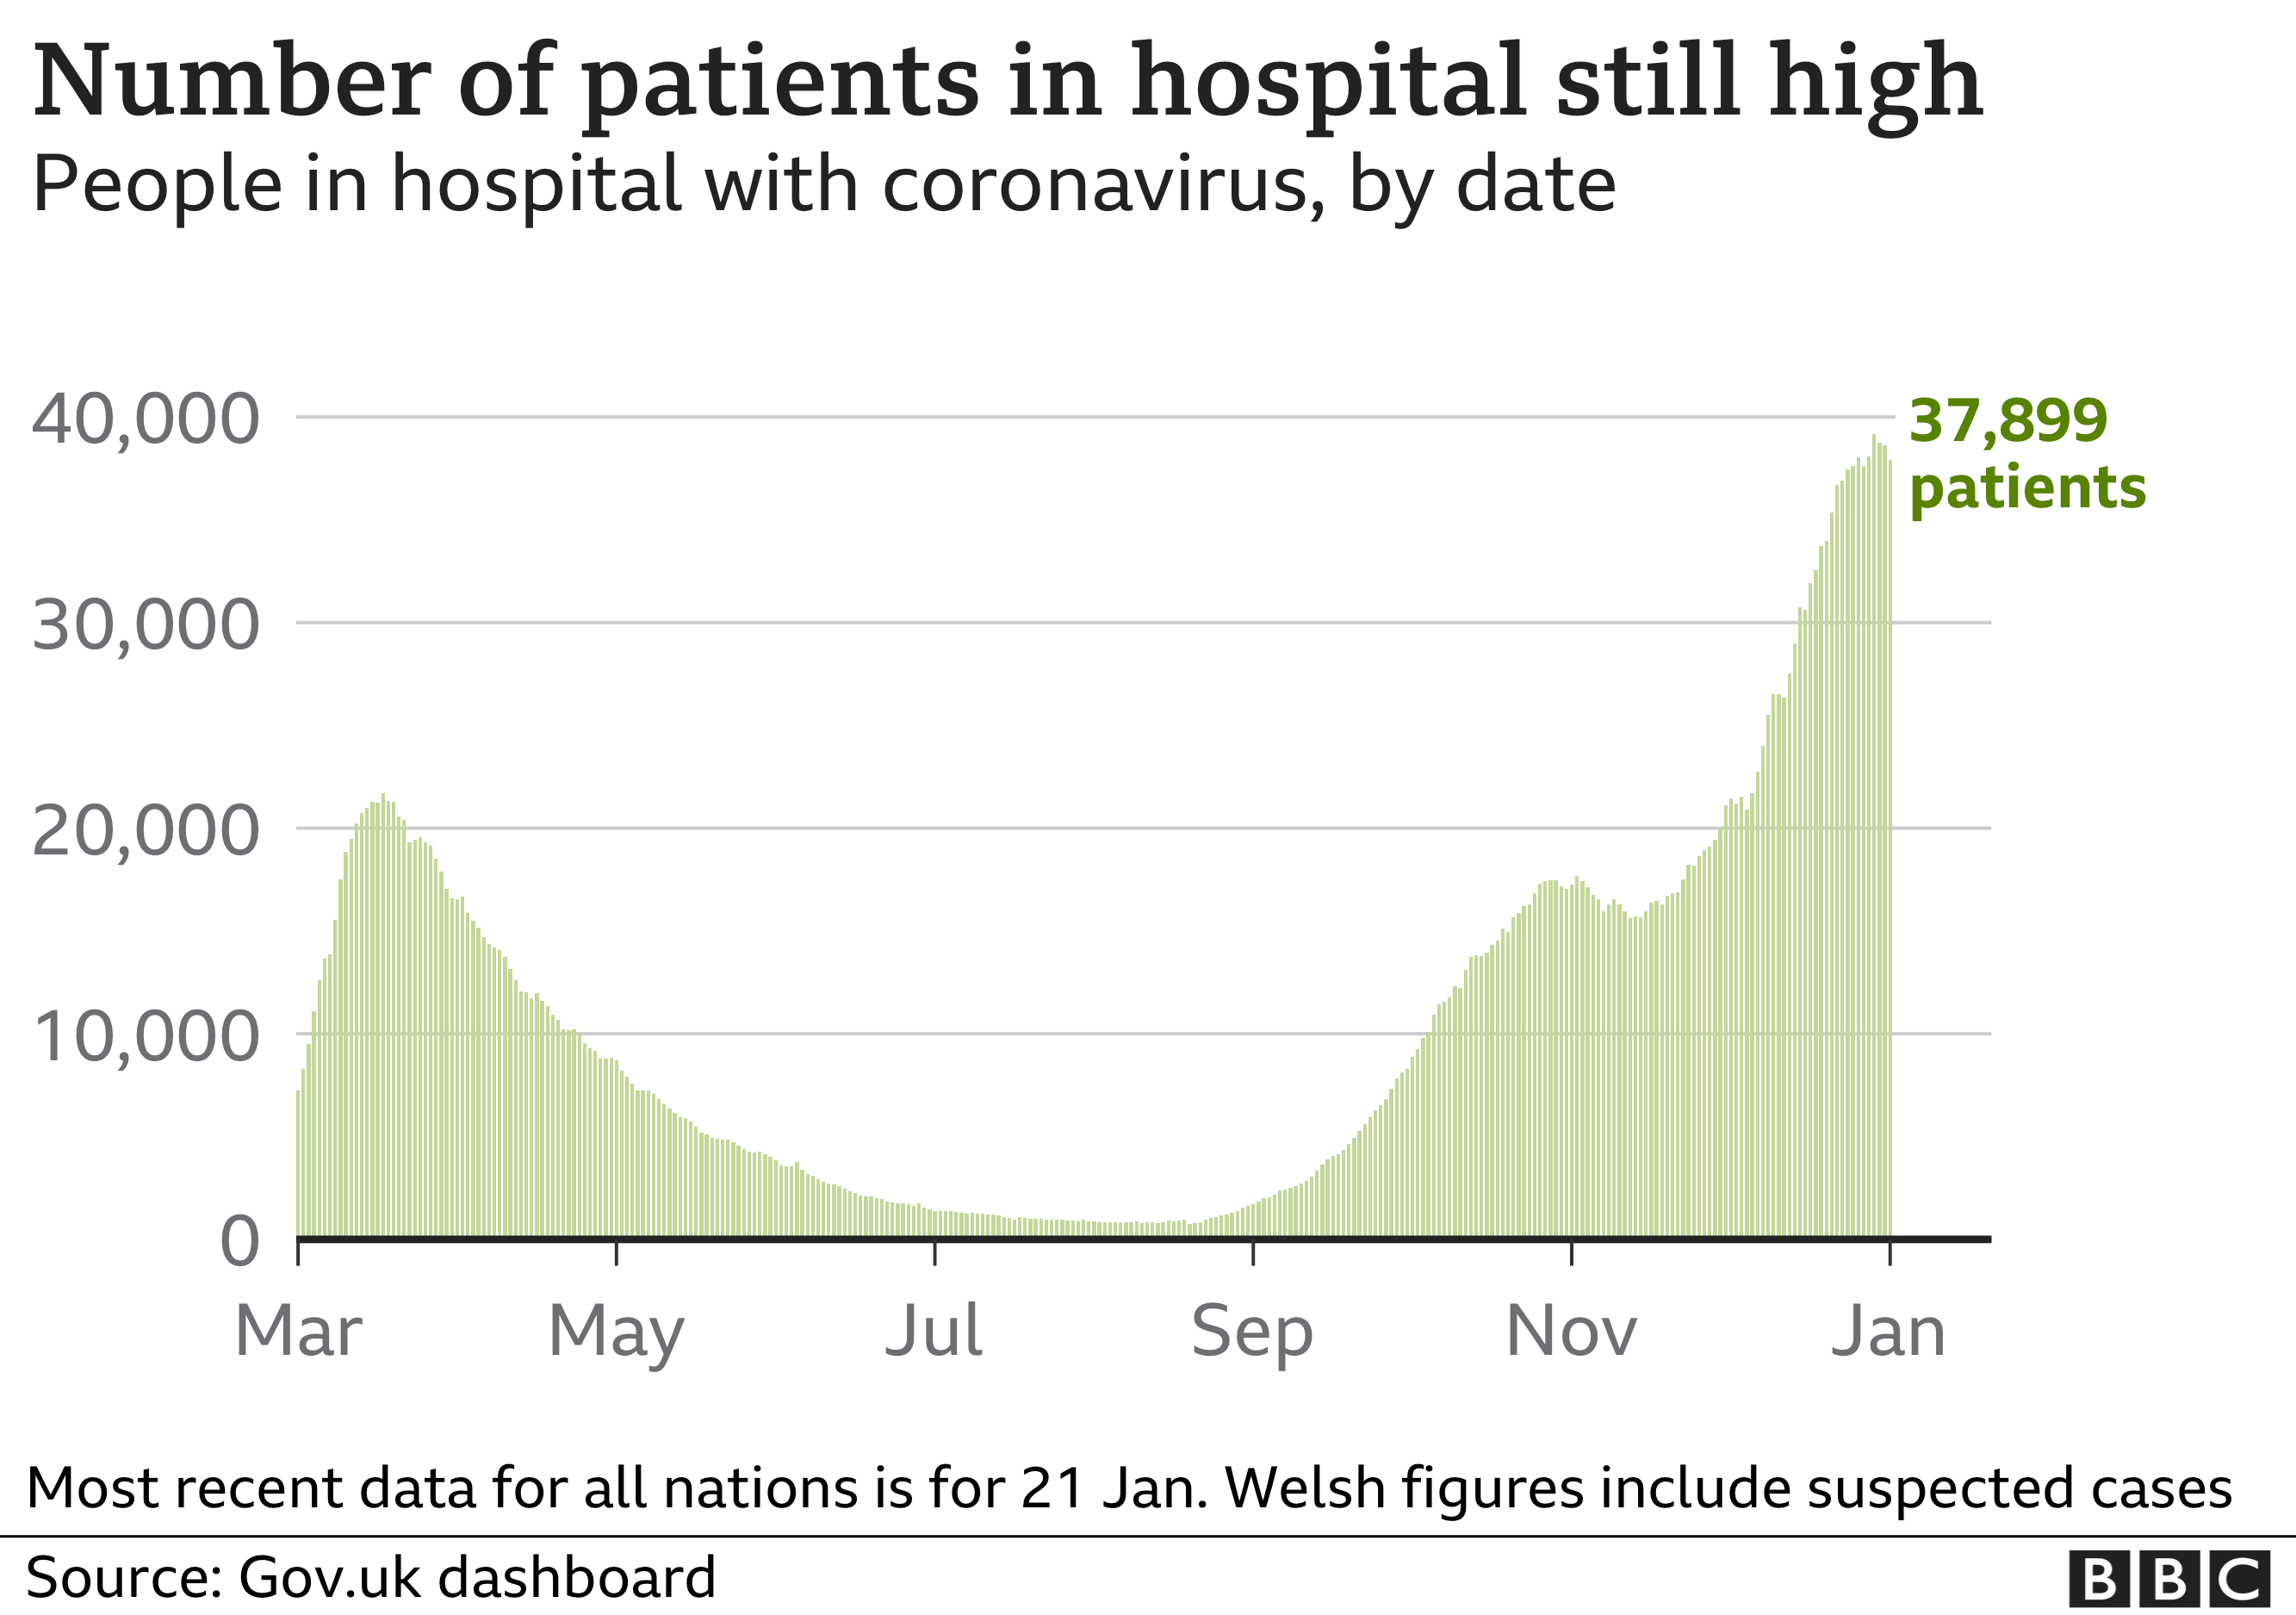 Chart showing the number of Covid patients in hospital still remains high